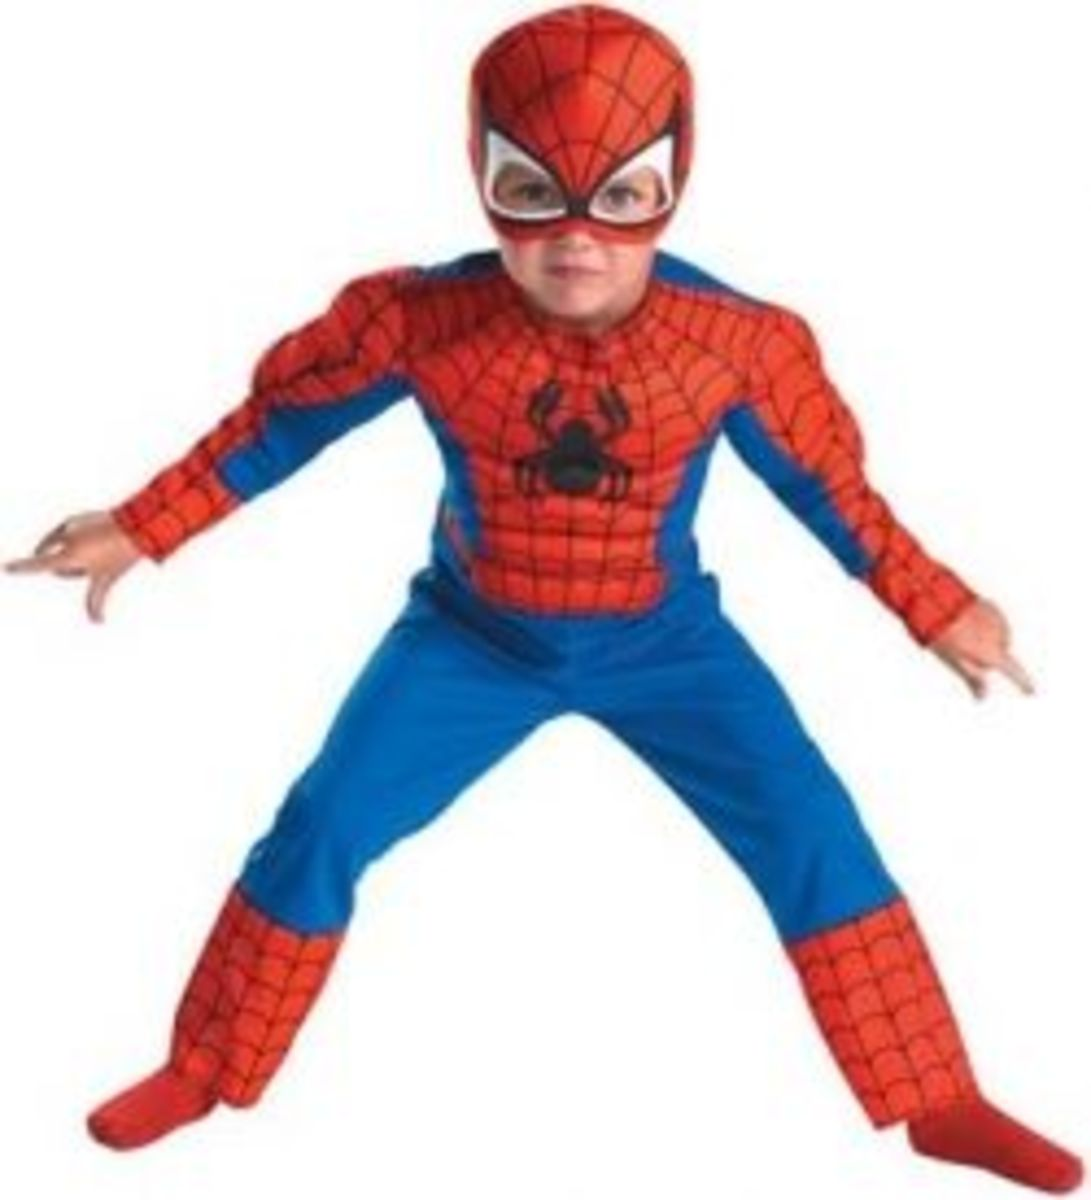 spiderman outfit for kids